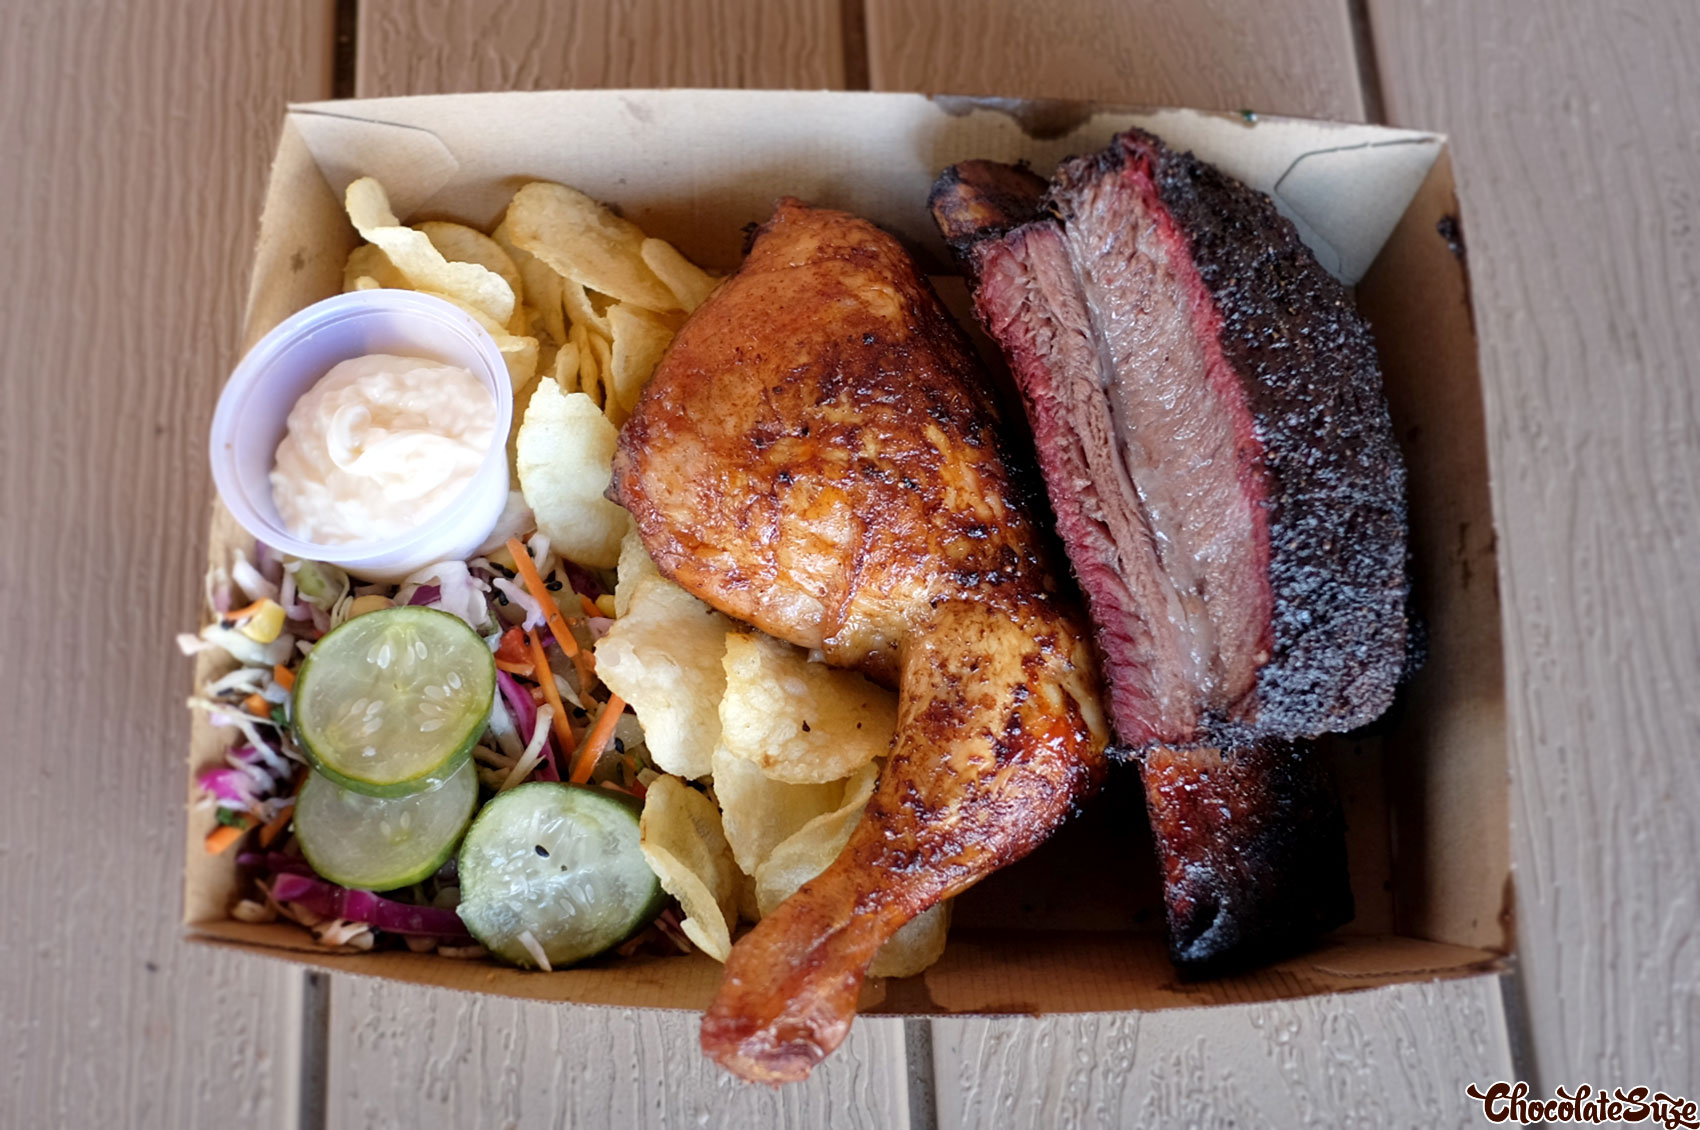 Beef short rib and smoked chicken at Black Bear BBQ, Blacktown